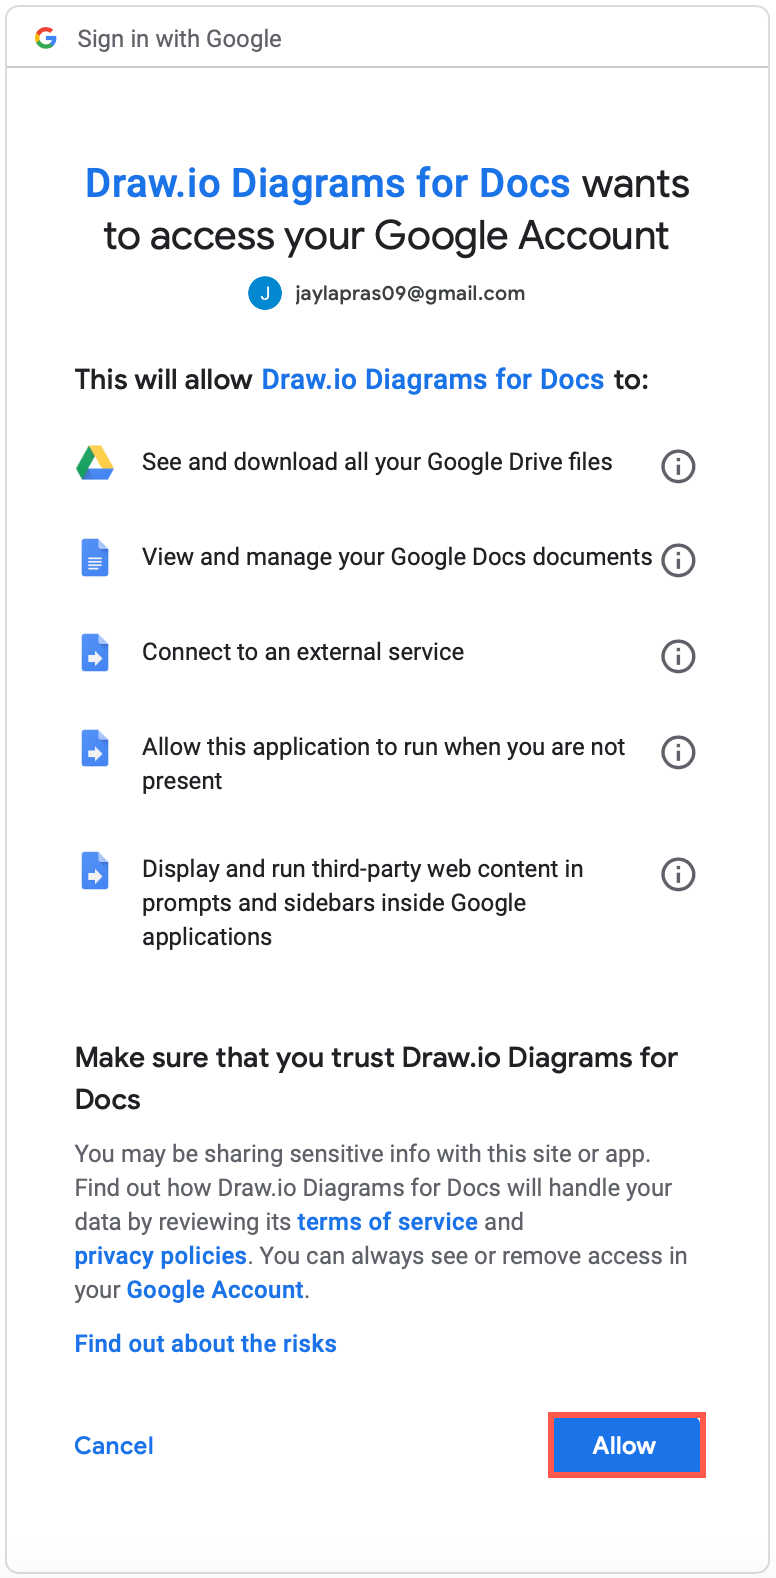 Grant permission for diagrams.net to access your Google Drive files and Google Docs